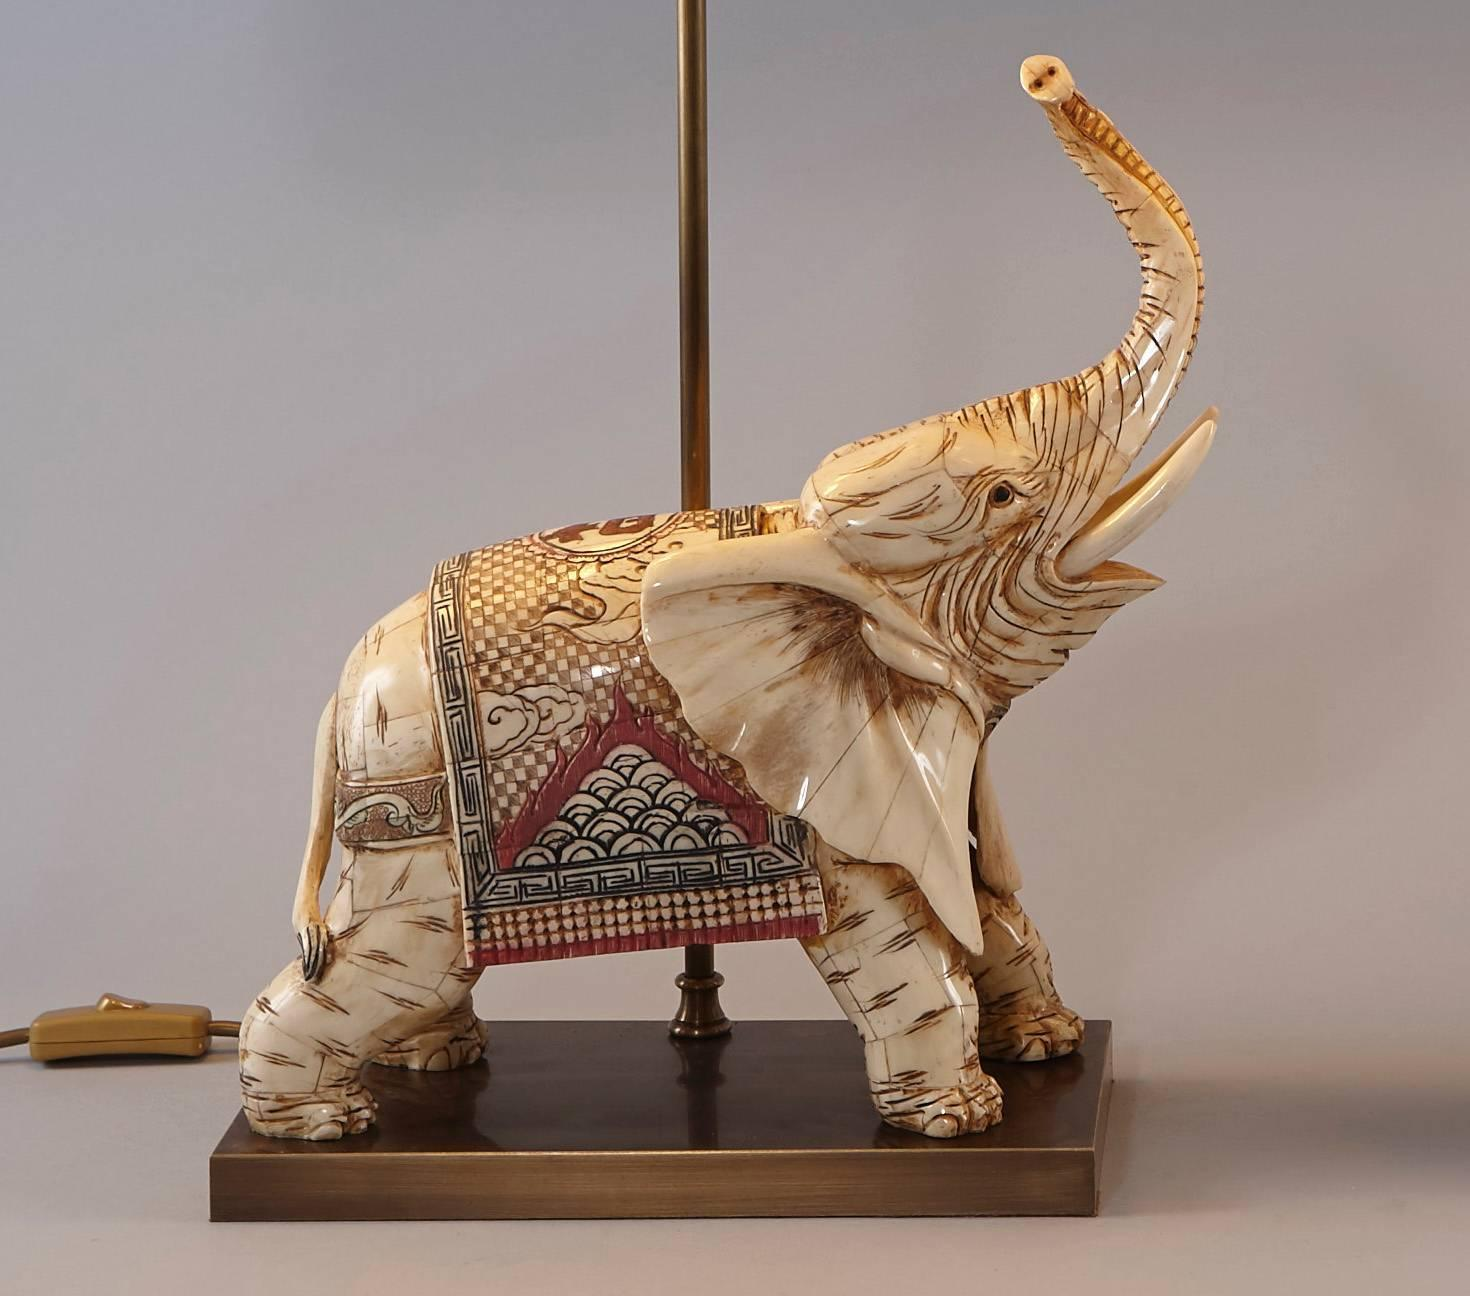 Table lamp elephant base best inspiration for table lamp for Table lamp elephant base